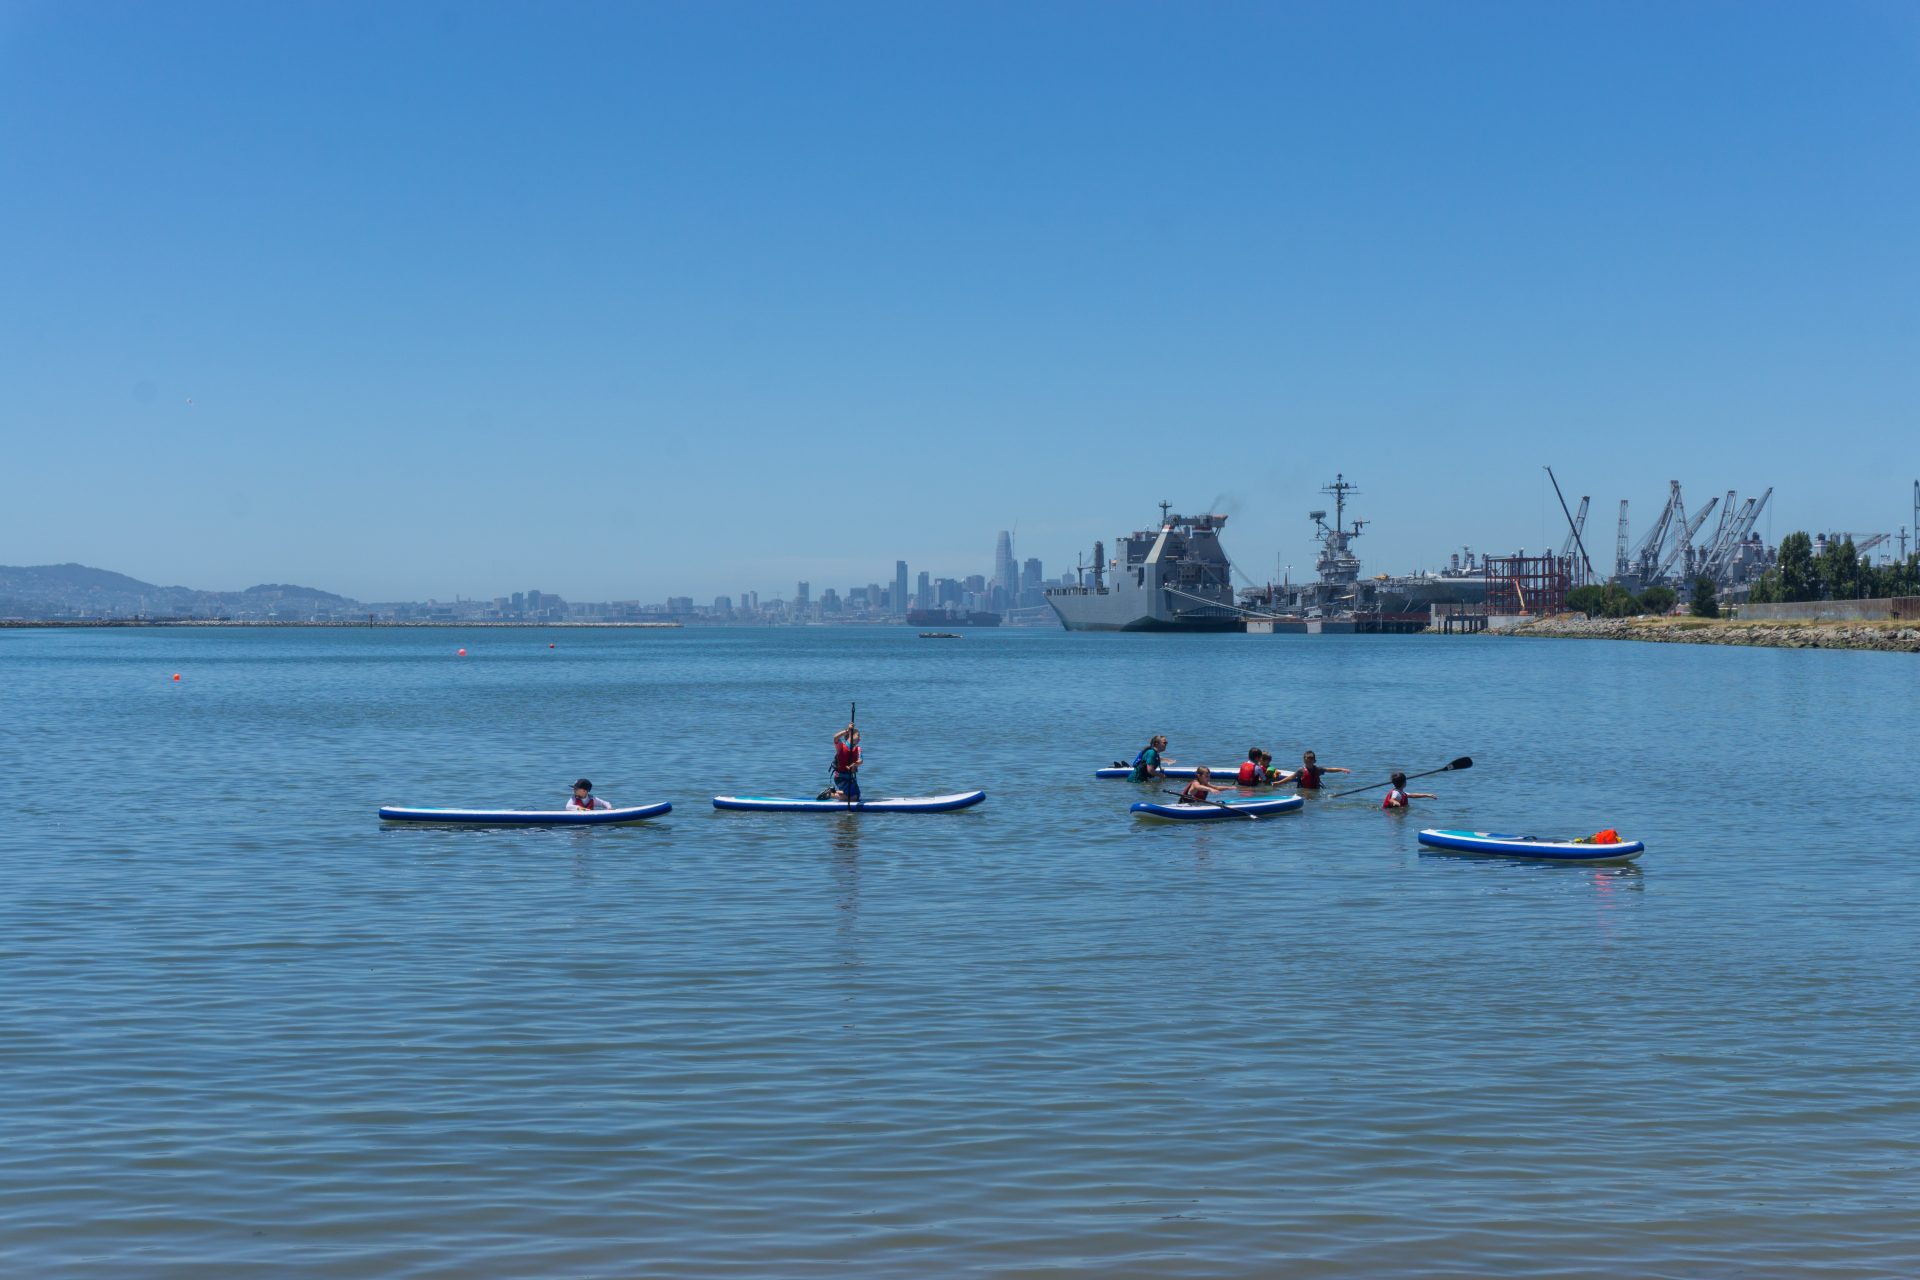 standup paddlers on still water, large ships and cranes in distance